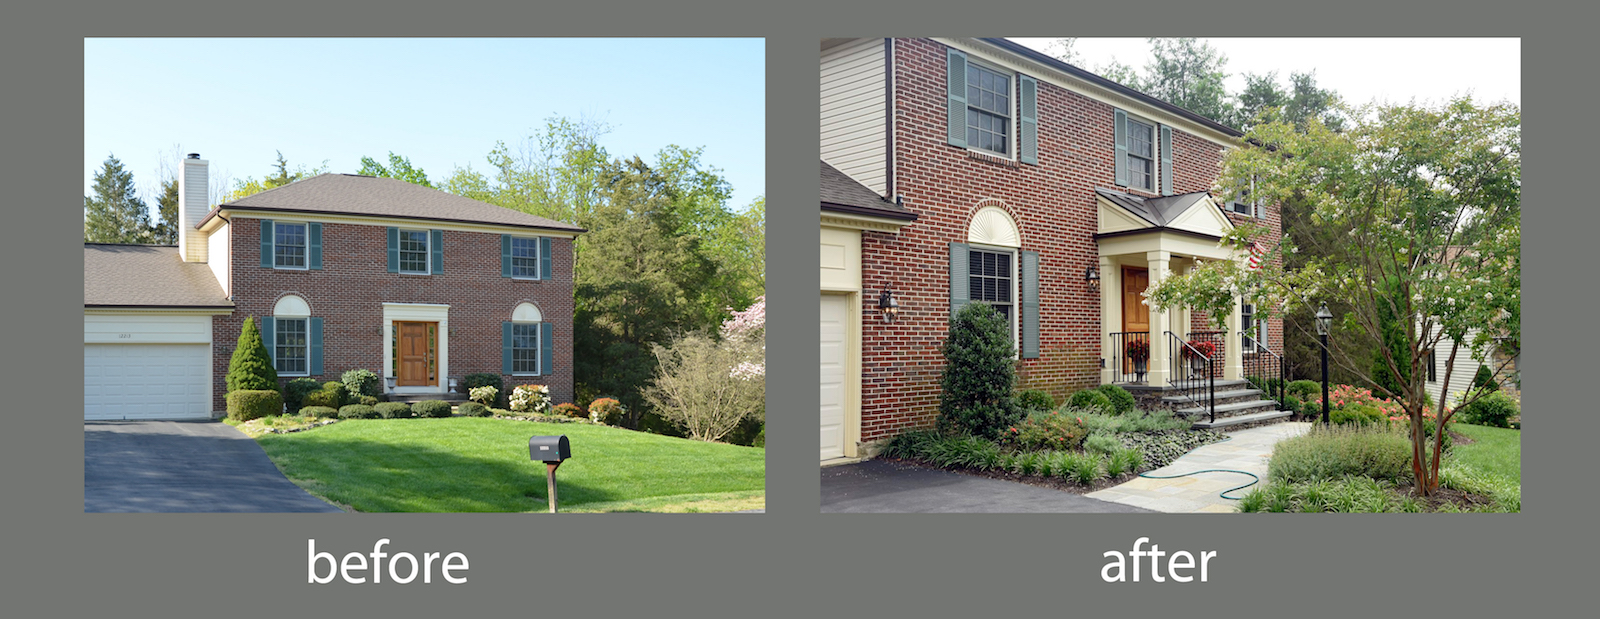 Before/after Front Yard Landscape Design Herndon Va. Keep The Best Of The  Old And Mix It With Fresh And New